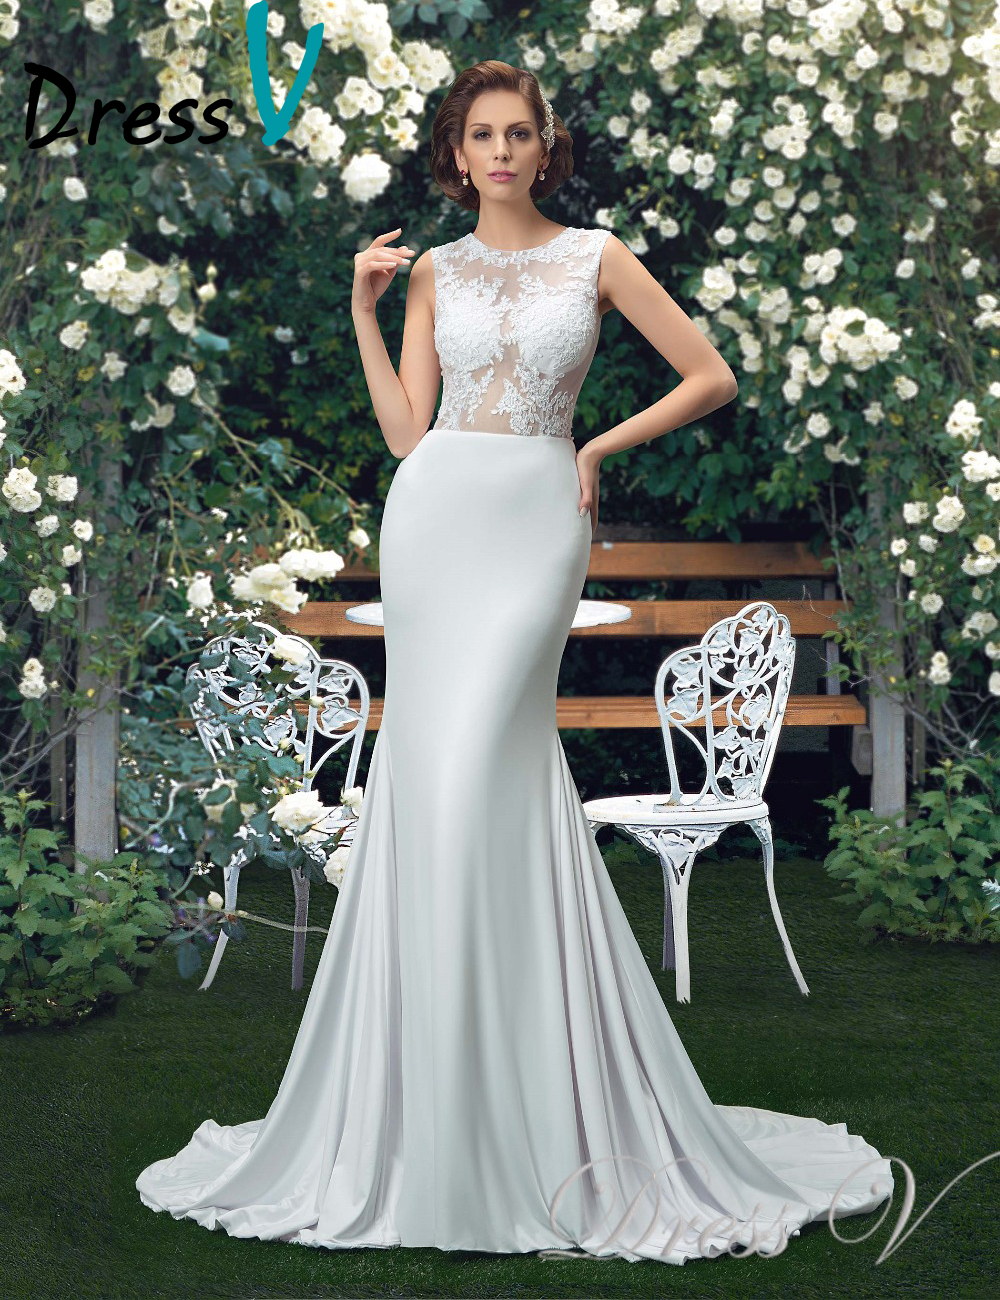 Dressv charming beachgarden wedding dresses trumpet sexy see dressv charming beachgarden wedding dresses trumpet sexy see through lace top scoop bridal gowns vestido de noiva plus size in wedding dresses from junglespirit Choice Image